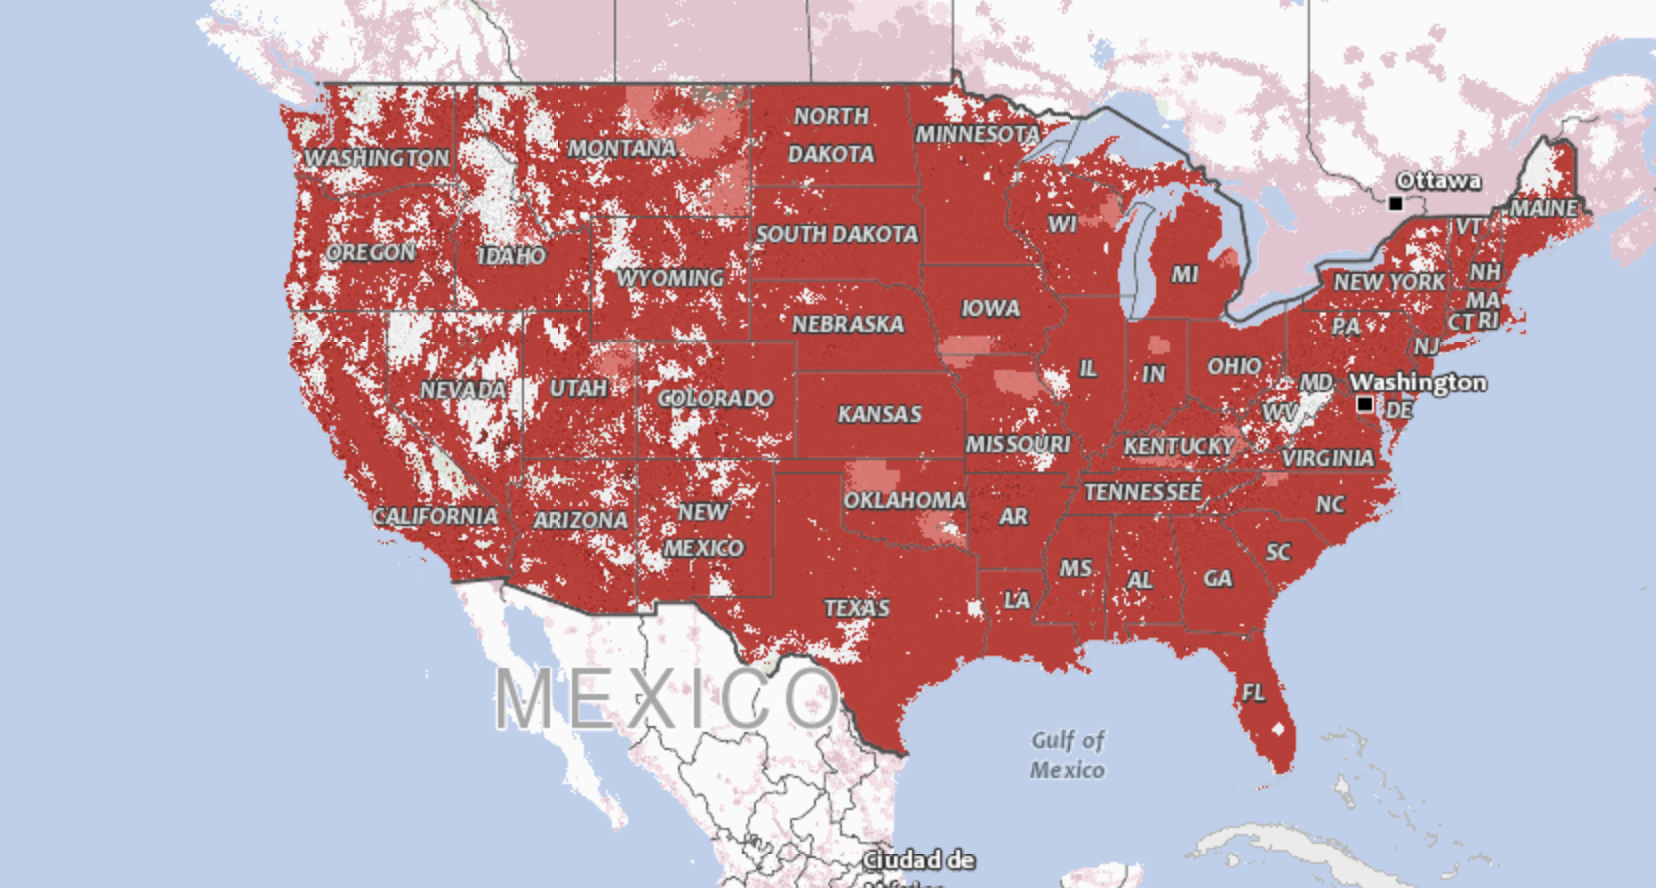 The Fcc Is Investigating Cell Carriers' Wireless Coverage Maps - Verizon Service Map California